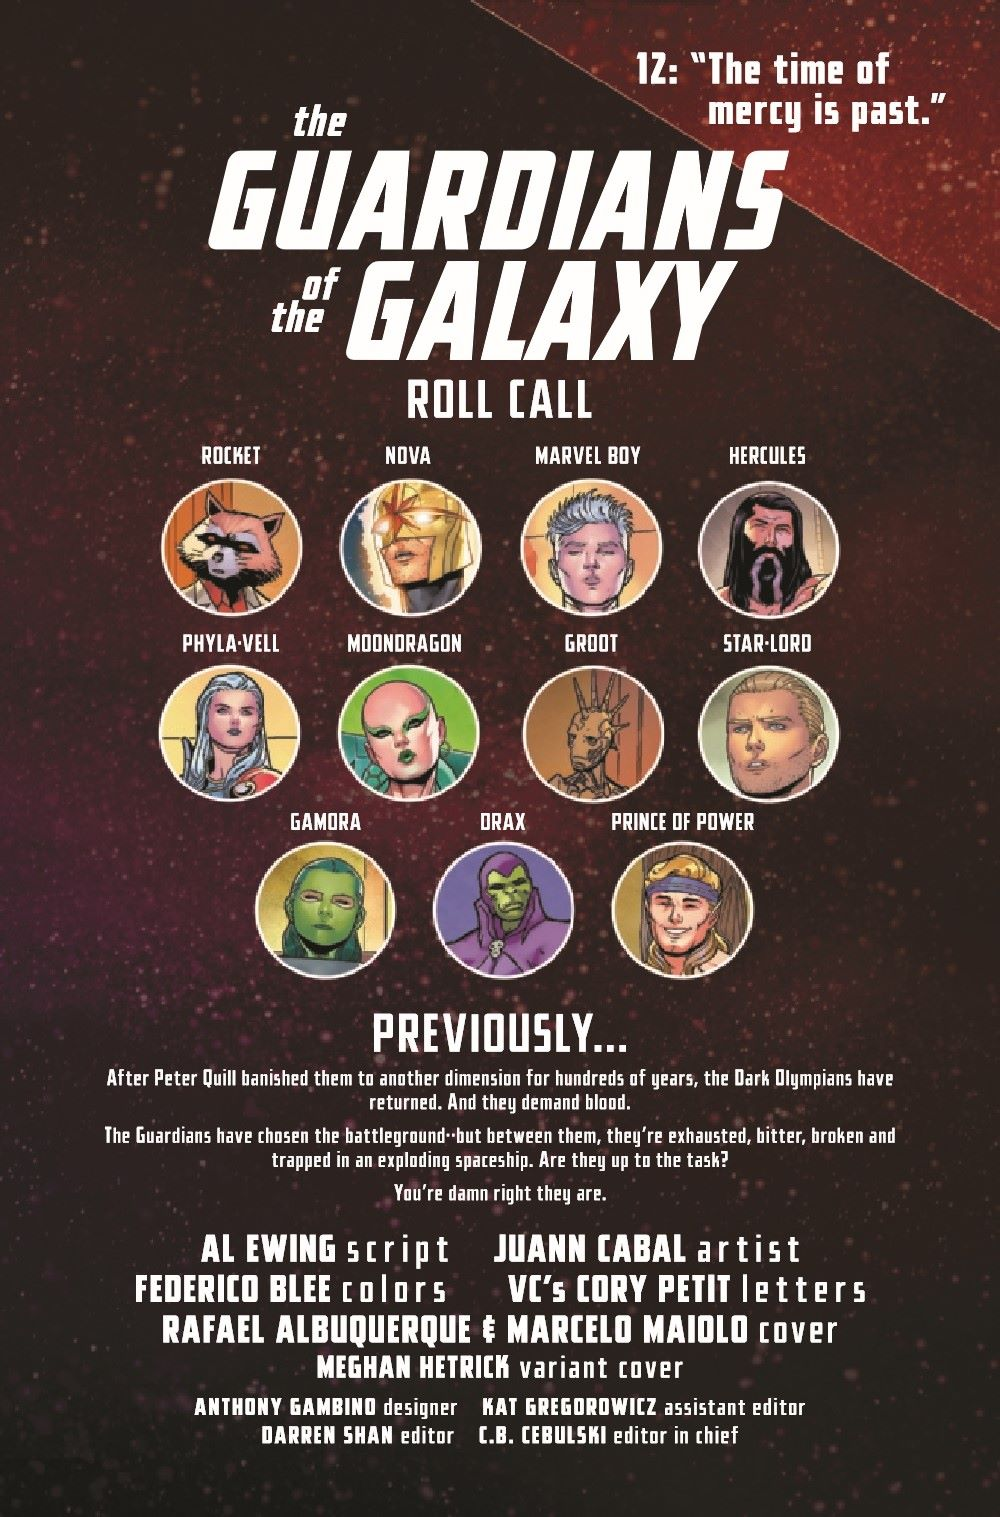 GARGAL2020012_Preview-2 ComicList Previews: GUARDIANS OF THE GALAXY #12